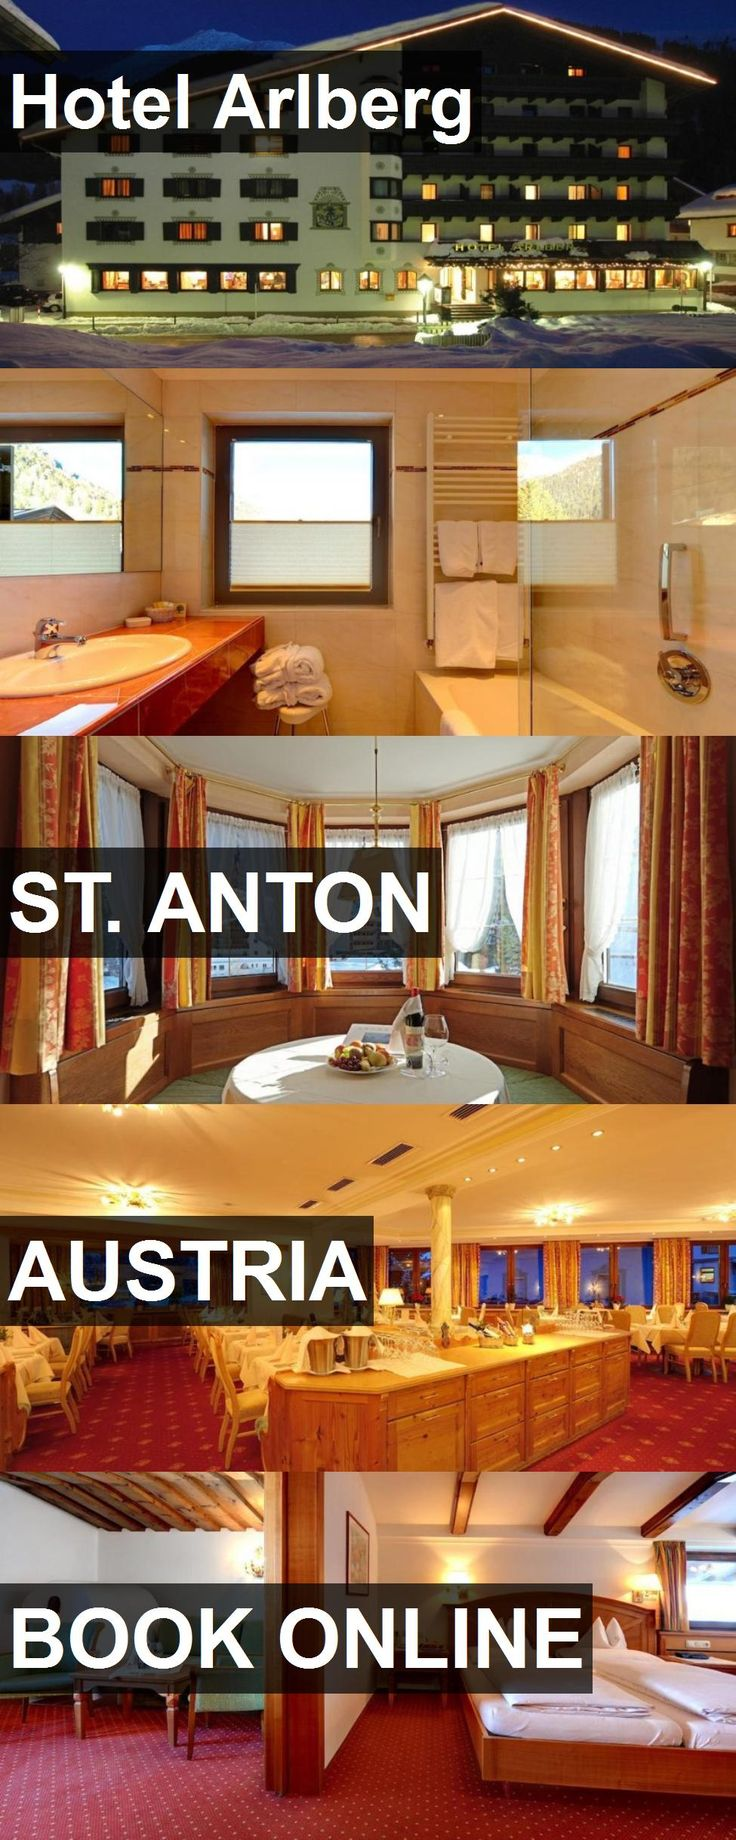 Hotel Arlberg in St. Anton, Austria. For more information, photos, reviews and best prices please follow the link. #Austria #St.Anton #travel #vacation #hotel